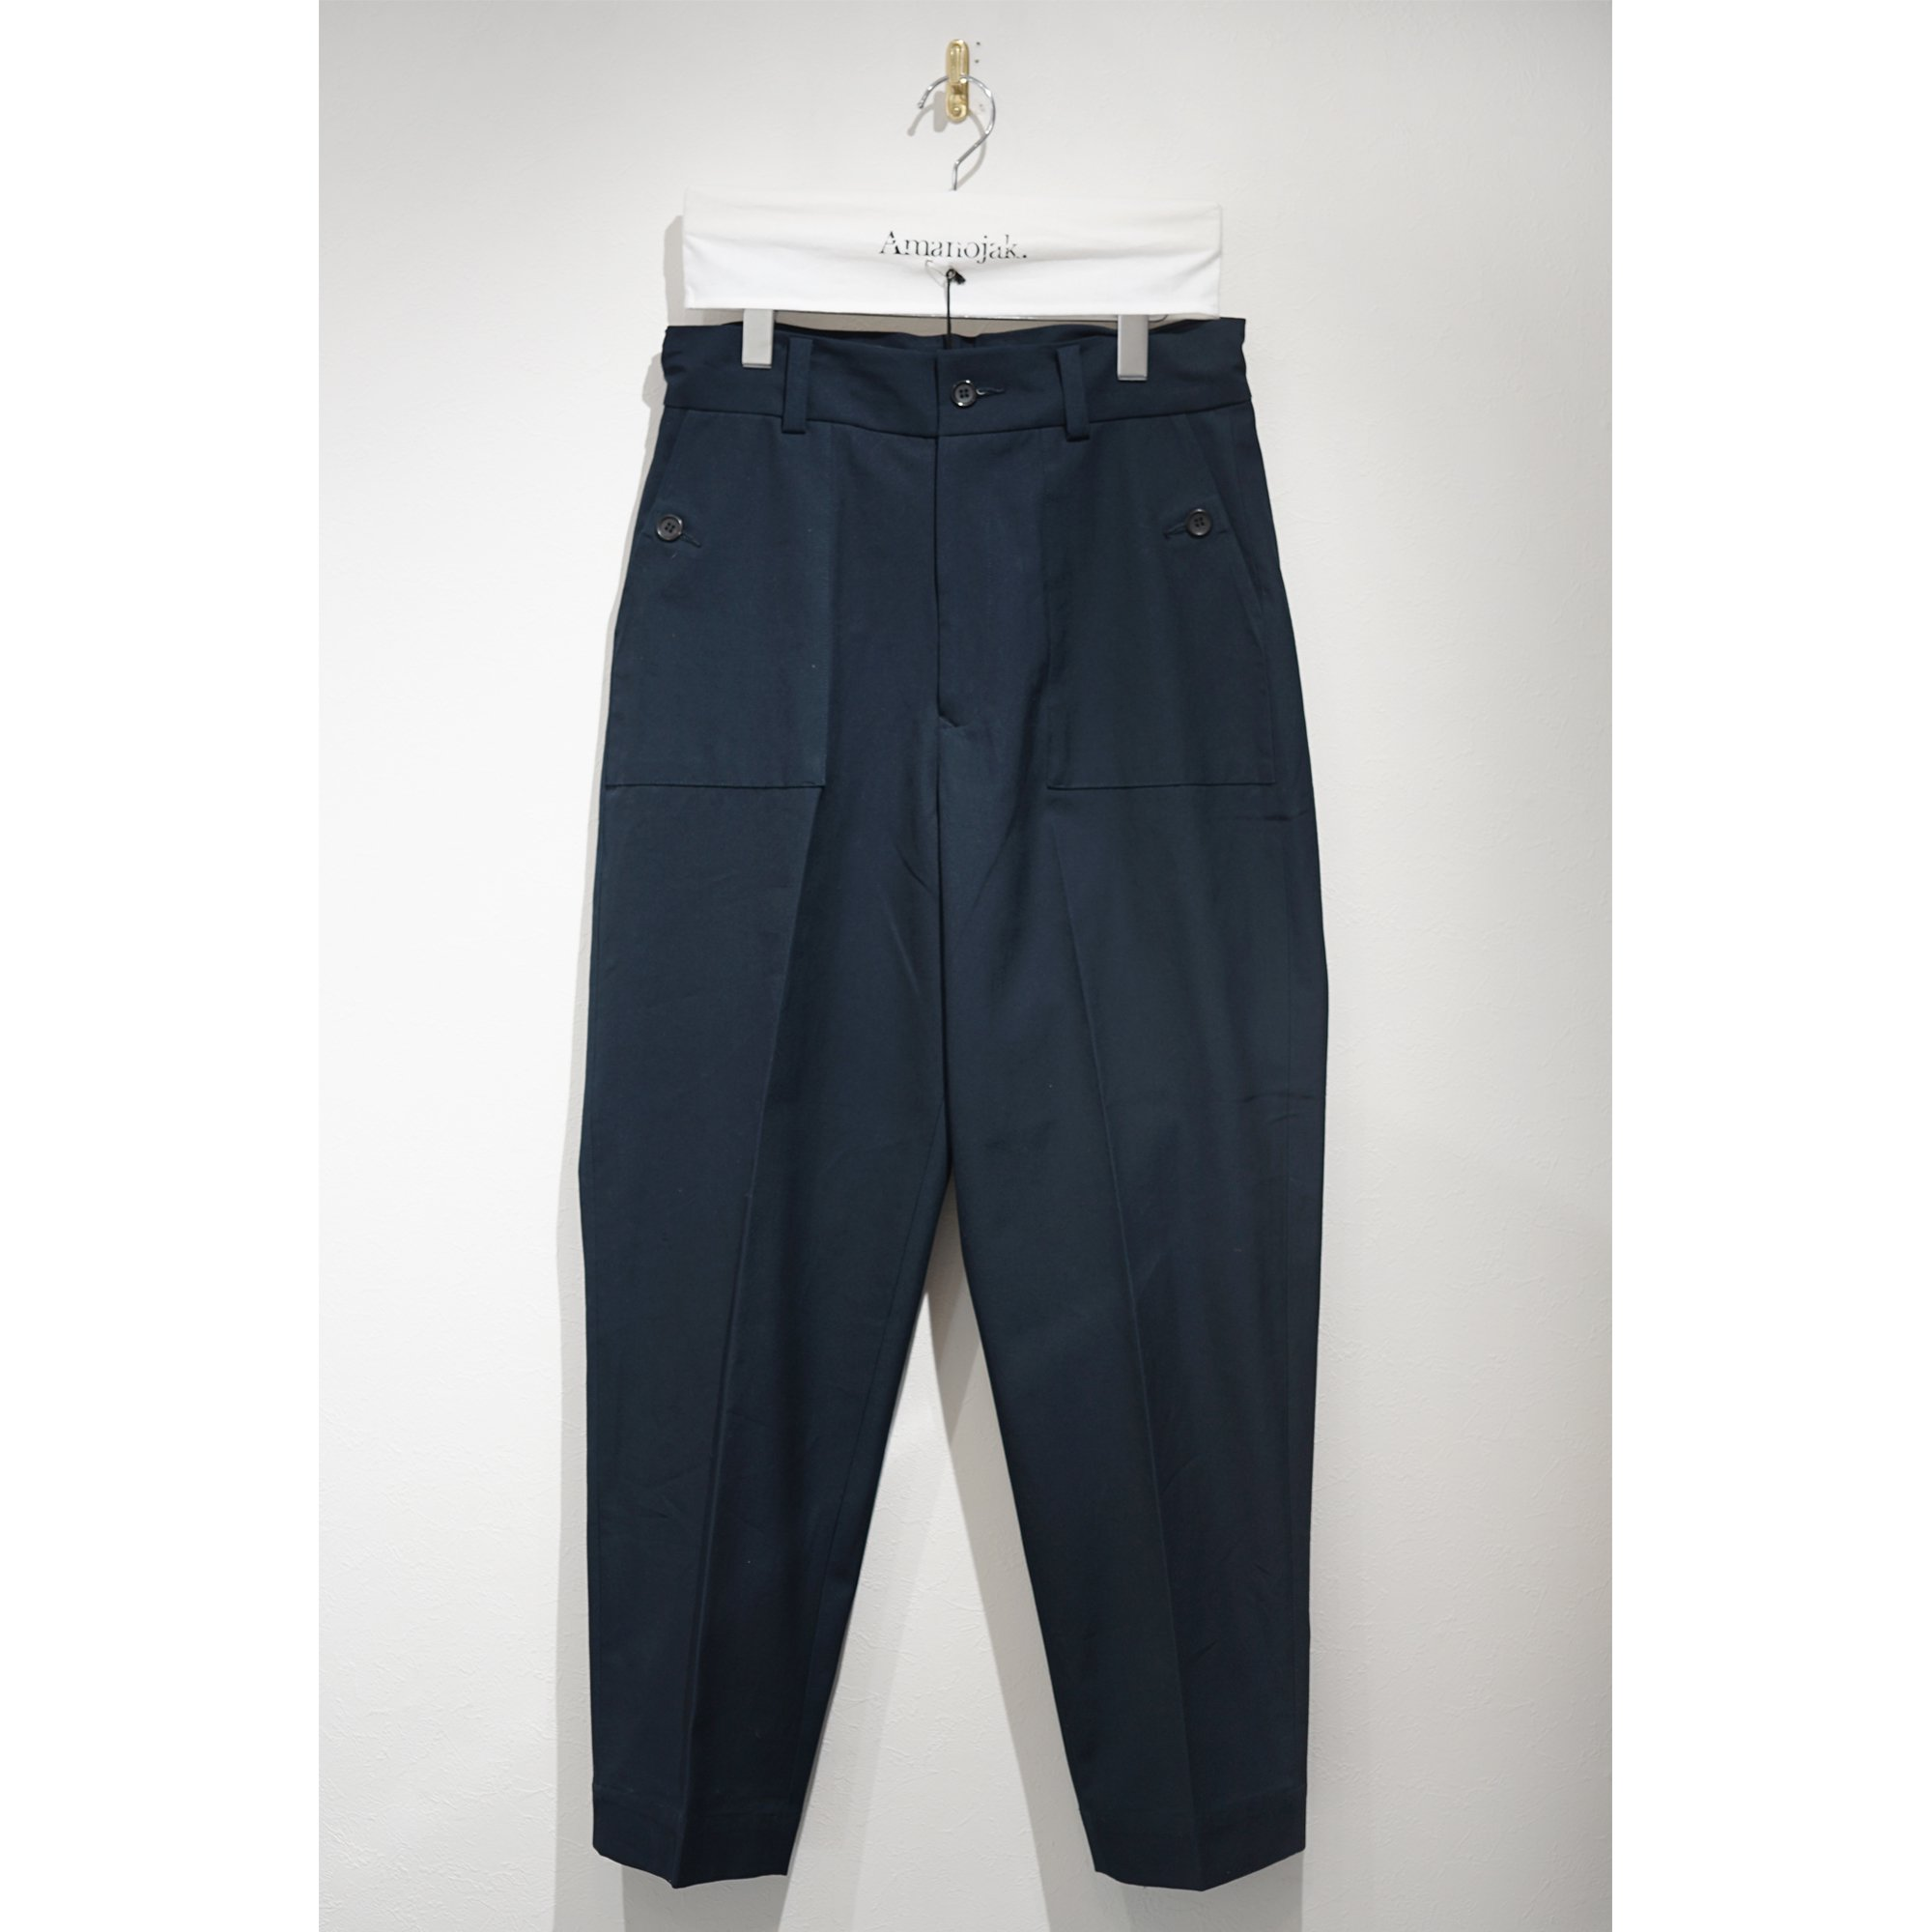 ATHA-COTTON BAKER PANTS NAVY